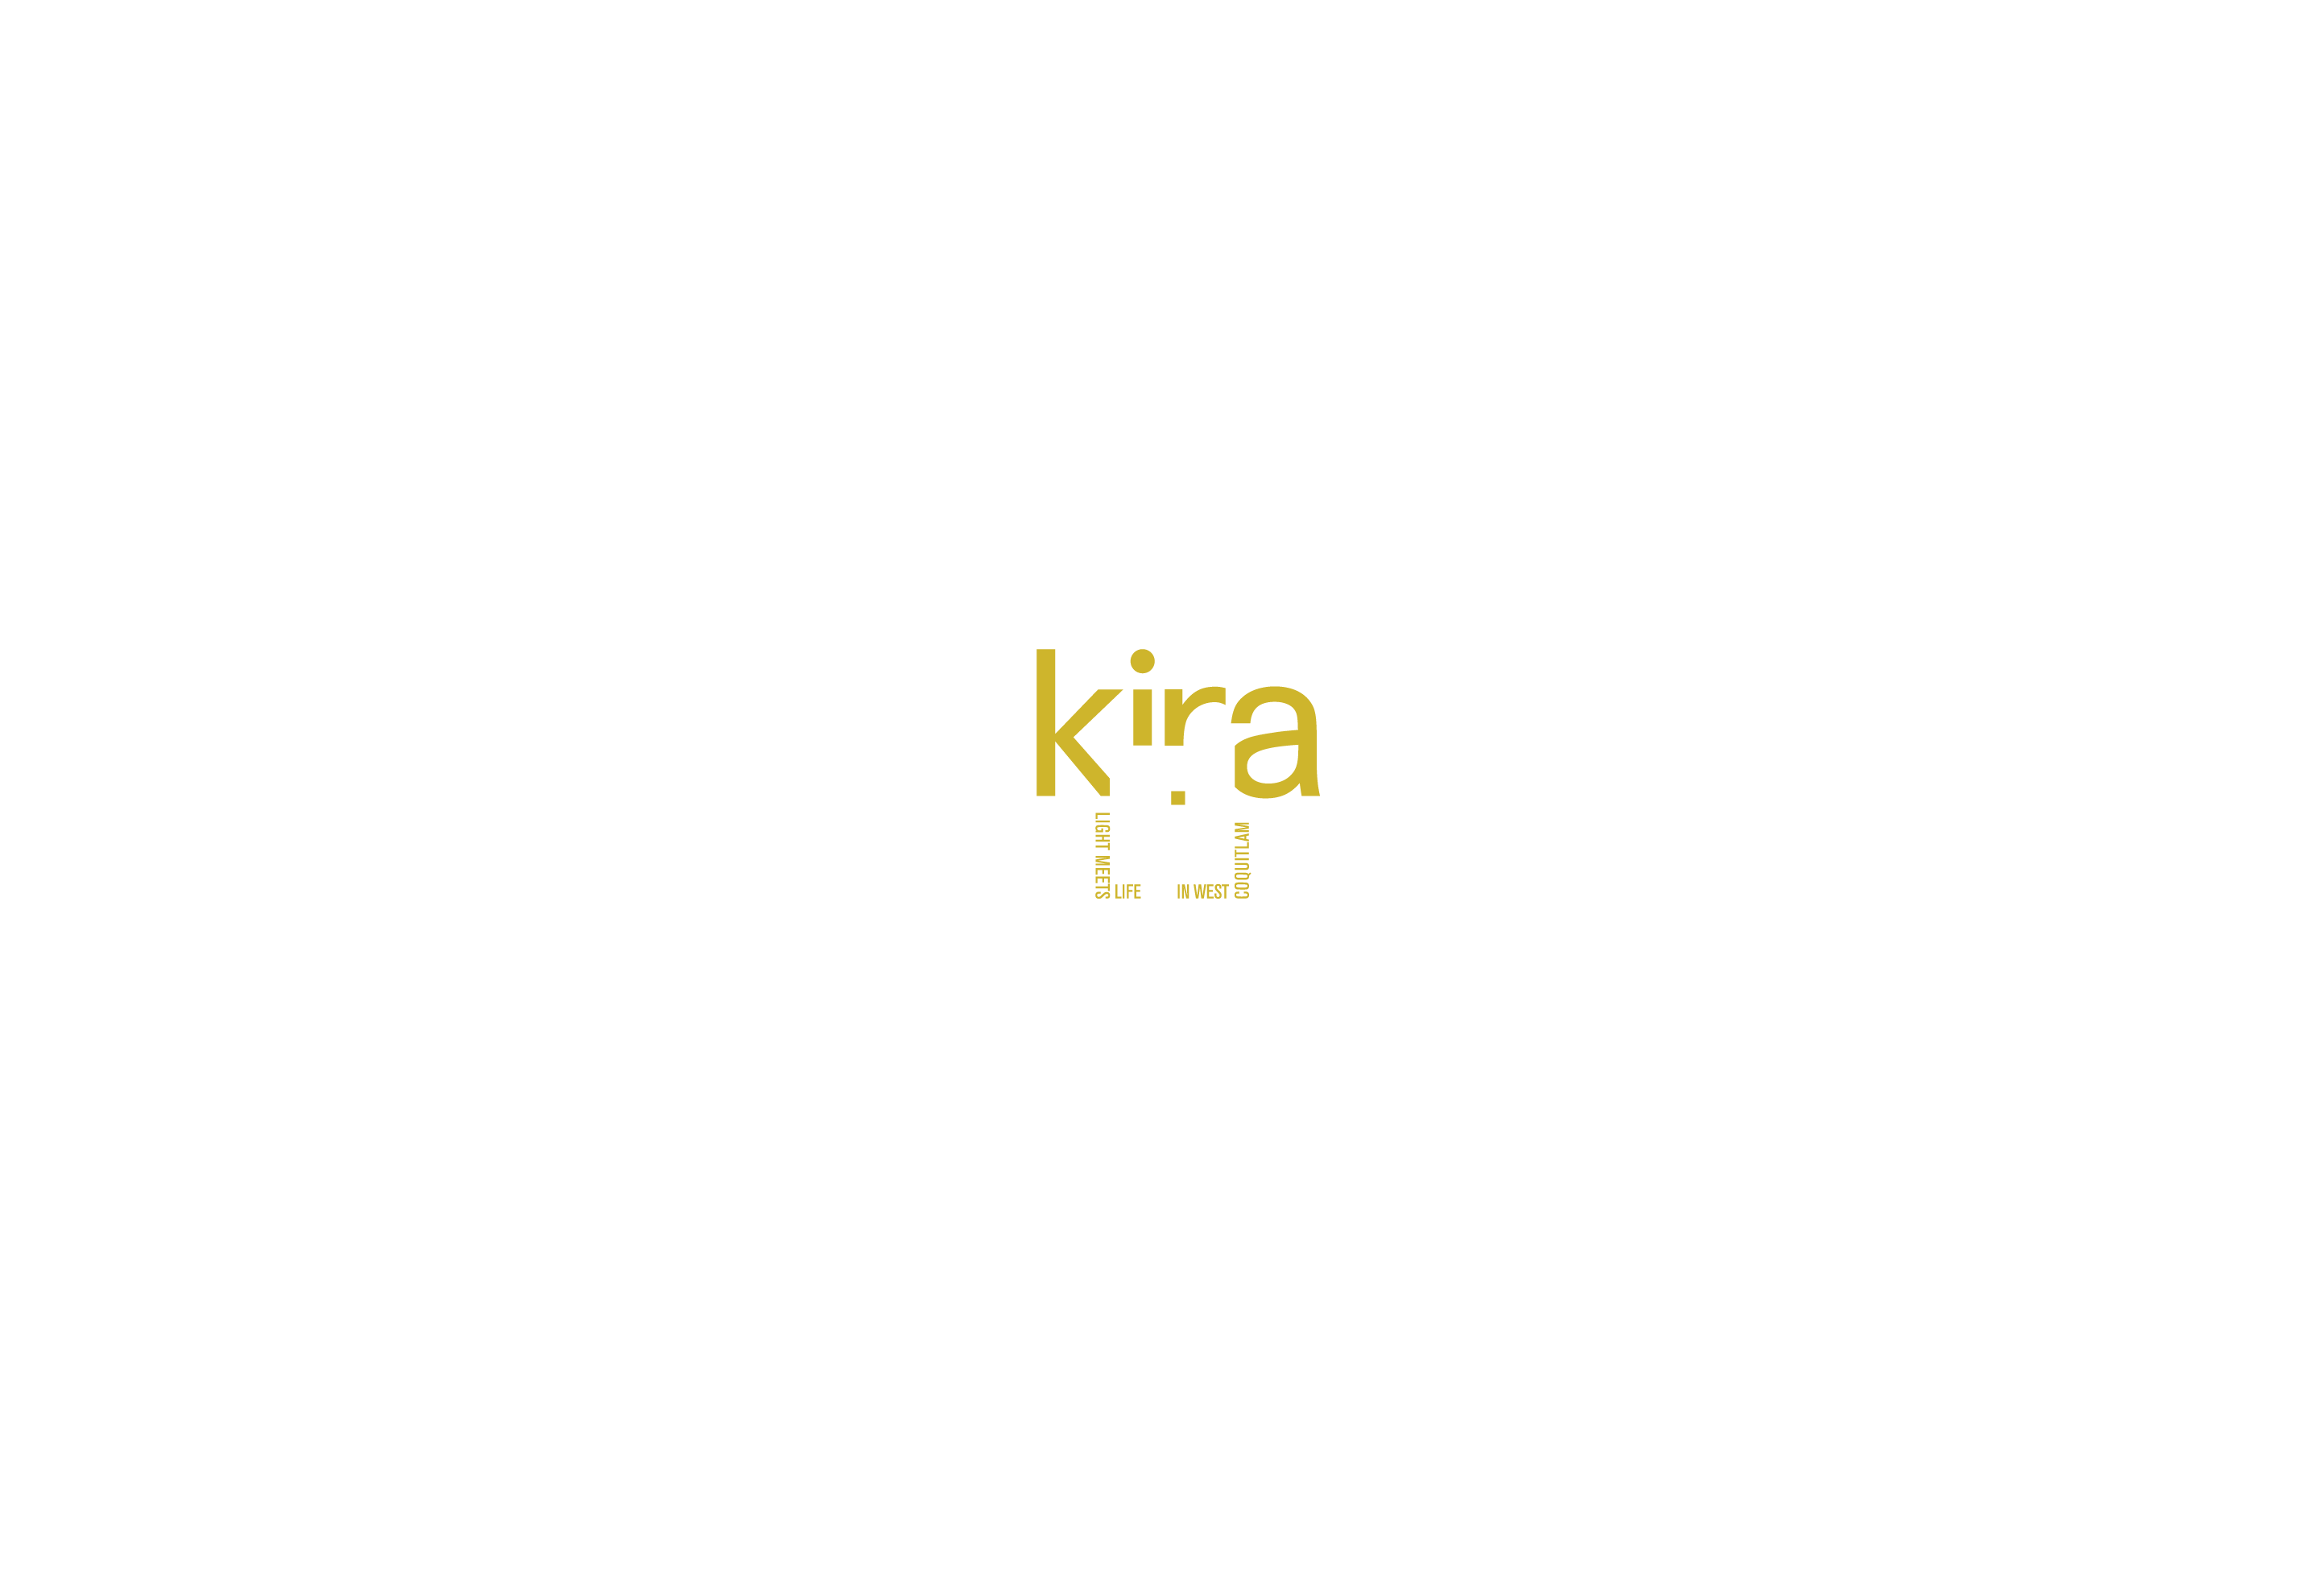 KIRA location marker